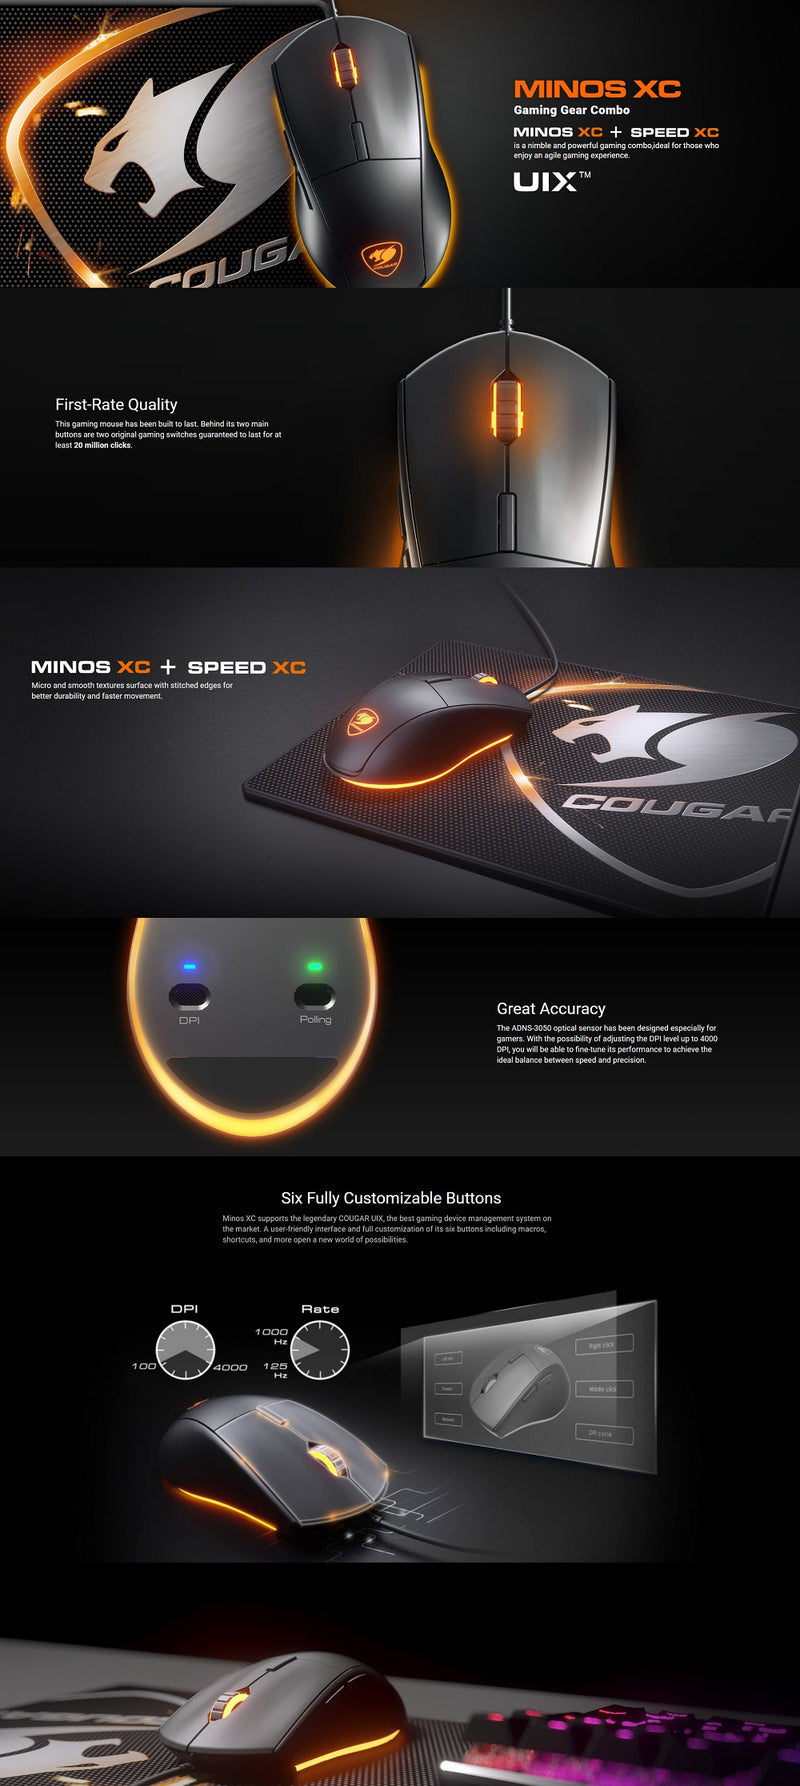 Cougar Gaming gear mouse and pad combo